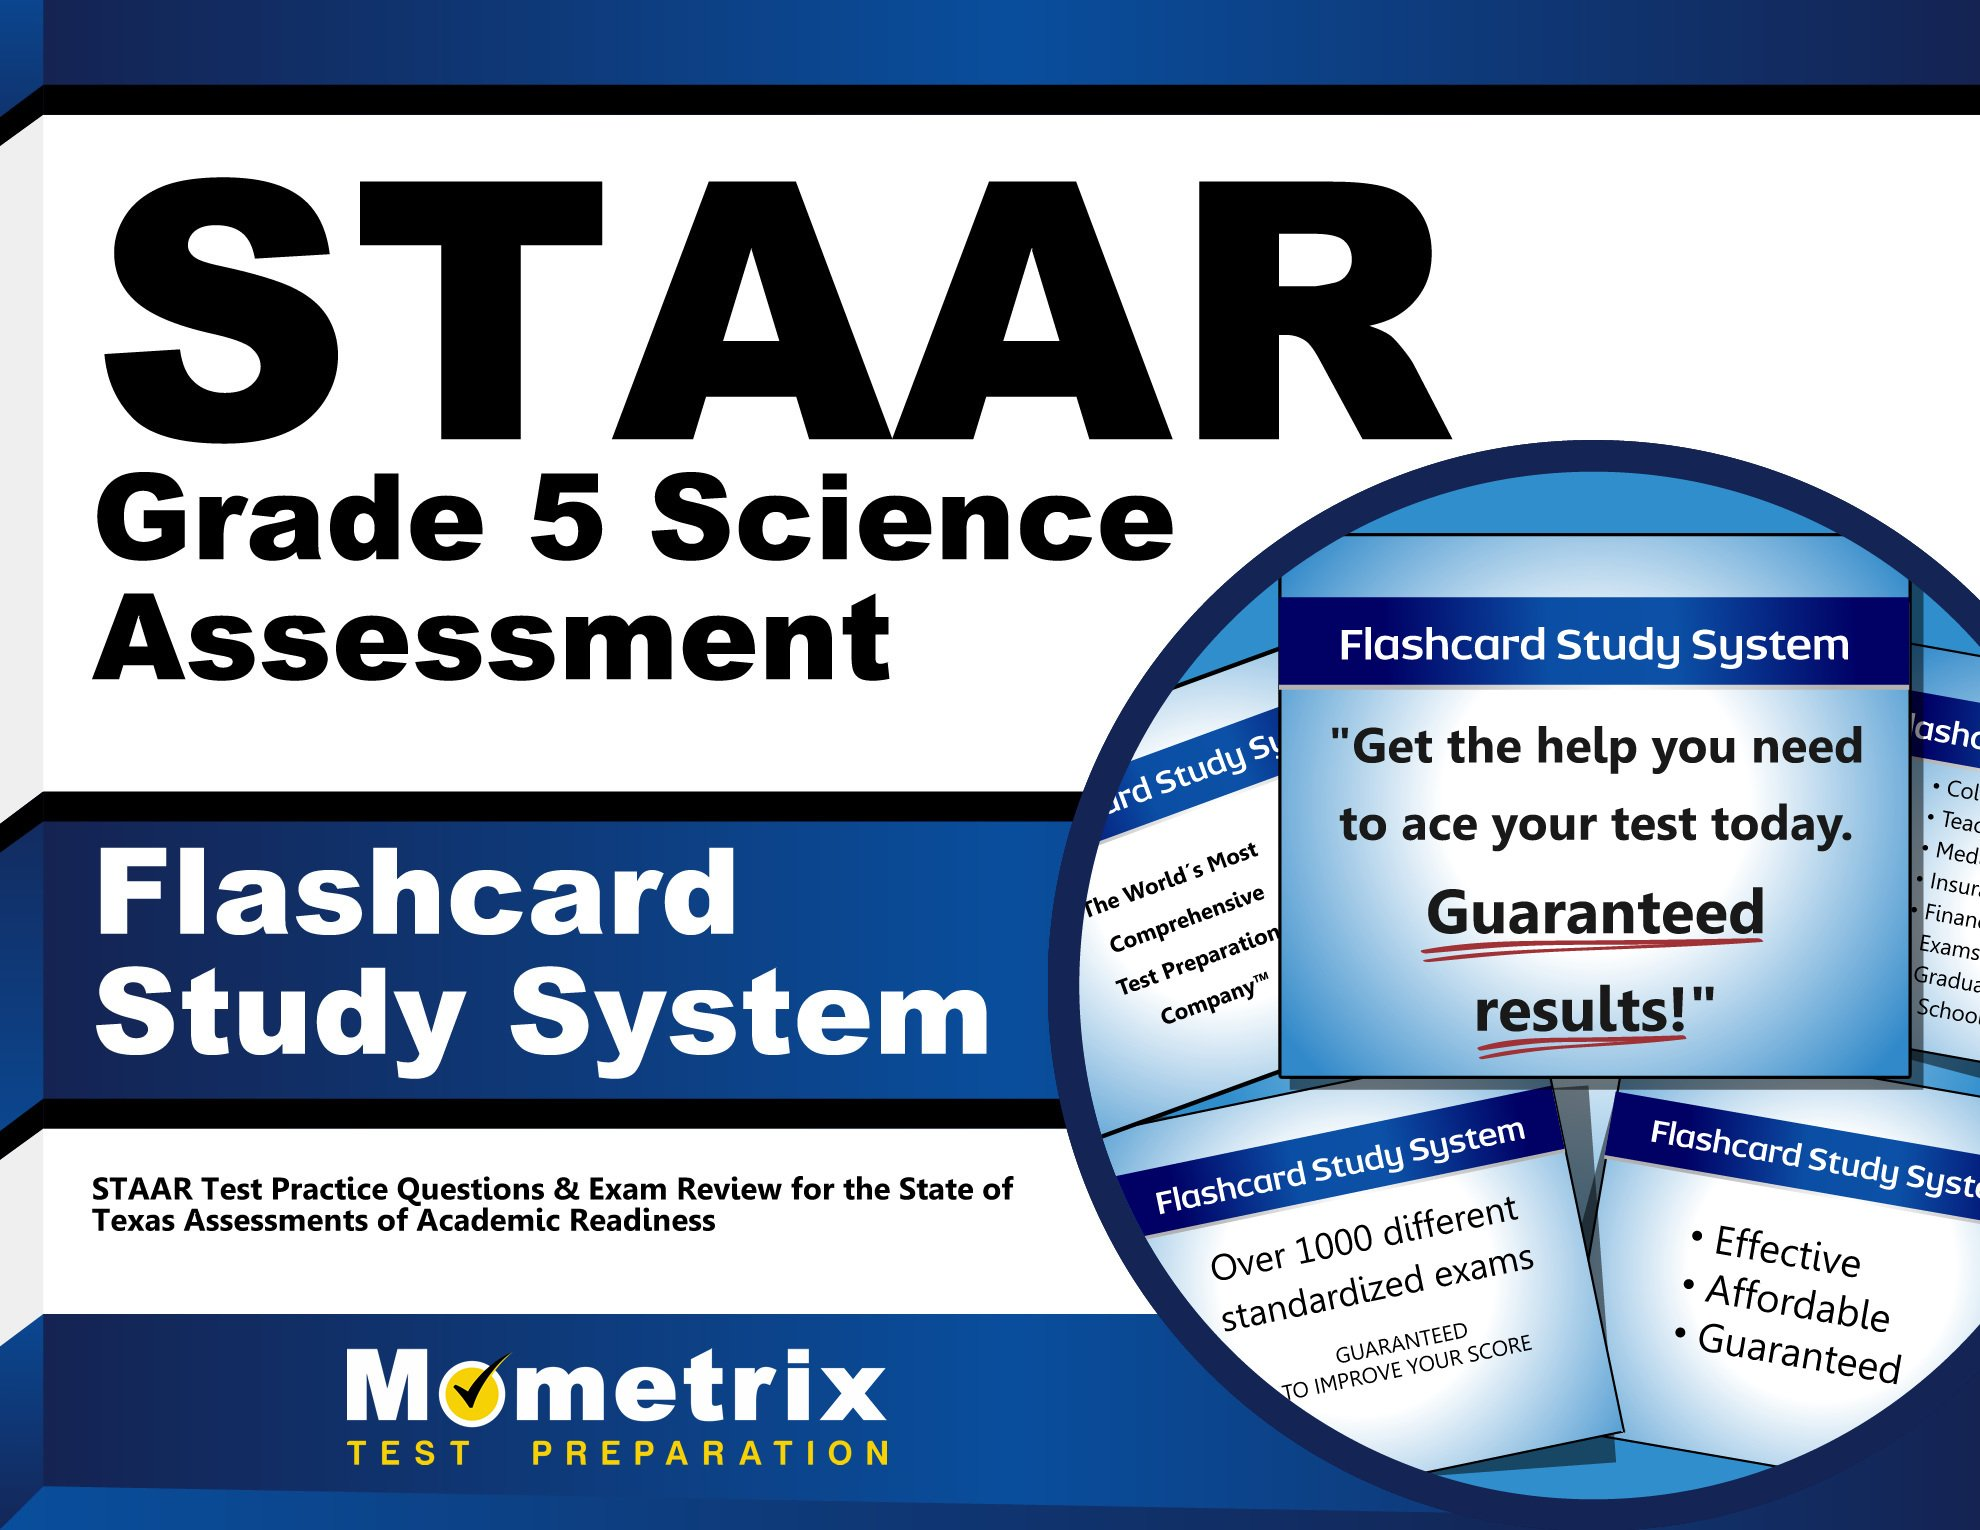 Download STAAR Grade 5 Science Assessment Flashcard Study System: STAAR Test Practice Questions & Exam Review for the State of Texas Assessments of Academic Readiness (Cards) pdf